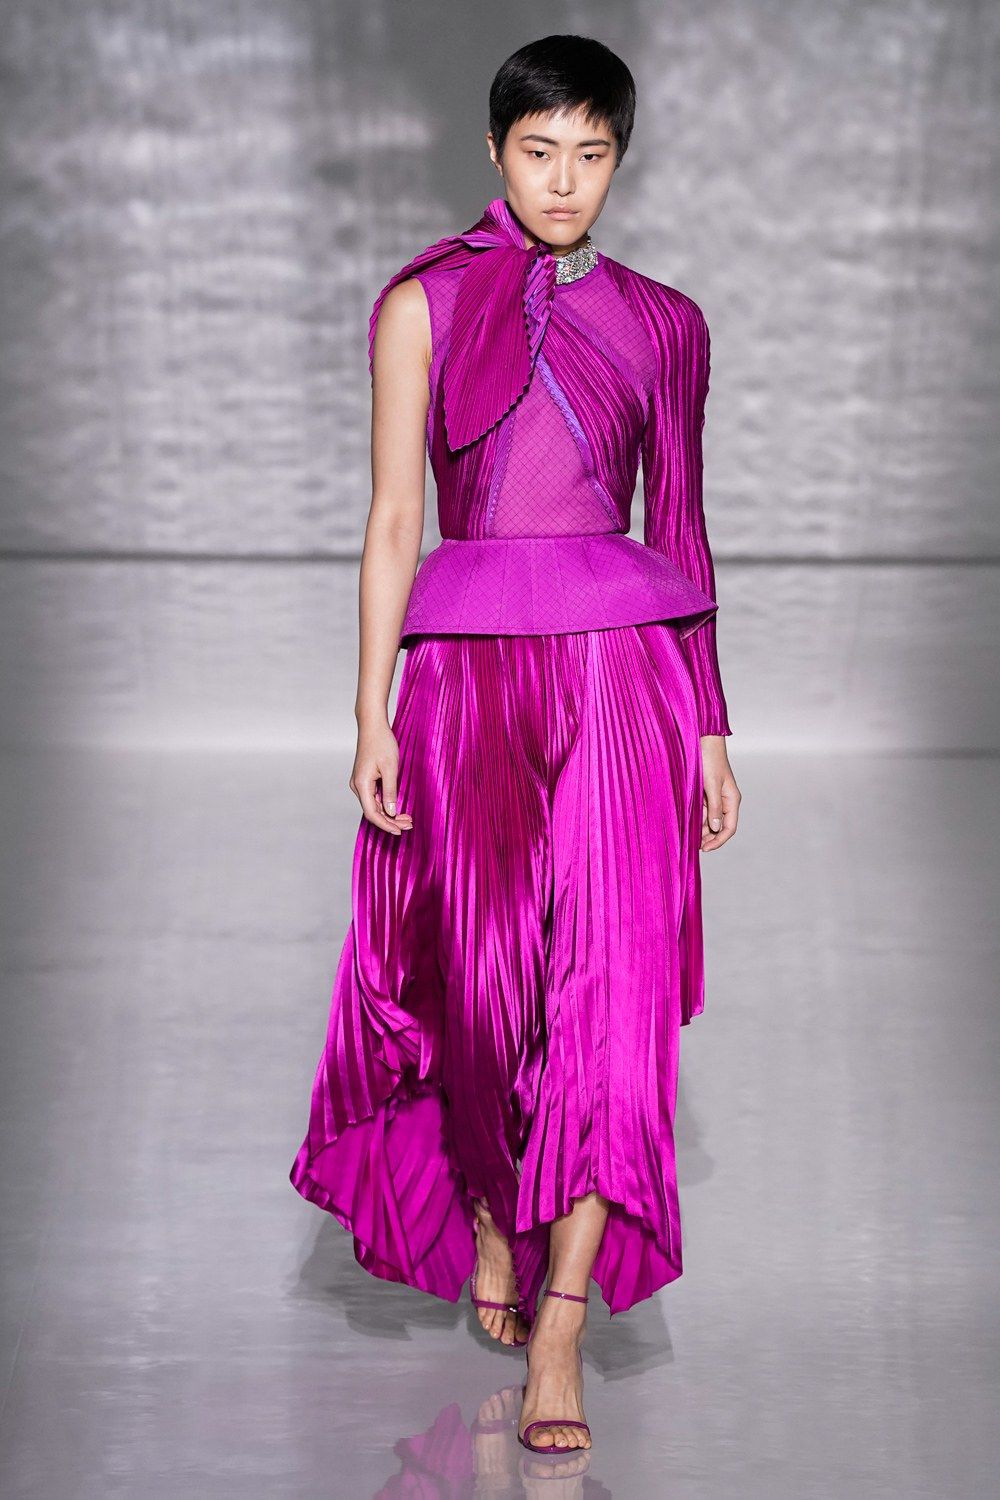 Givenchy Spring 20 Couture Fashion Show   Vogue, Couture, Stil ...